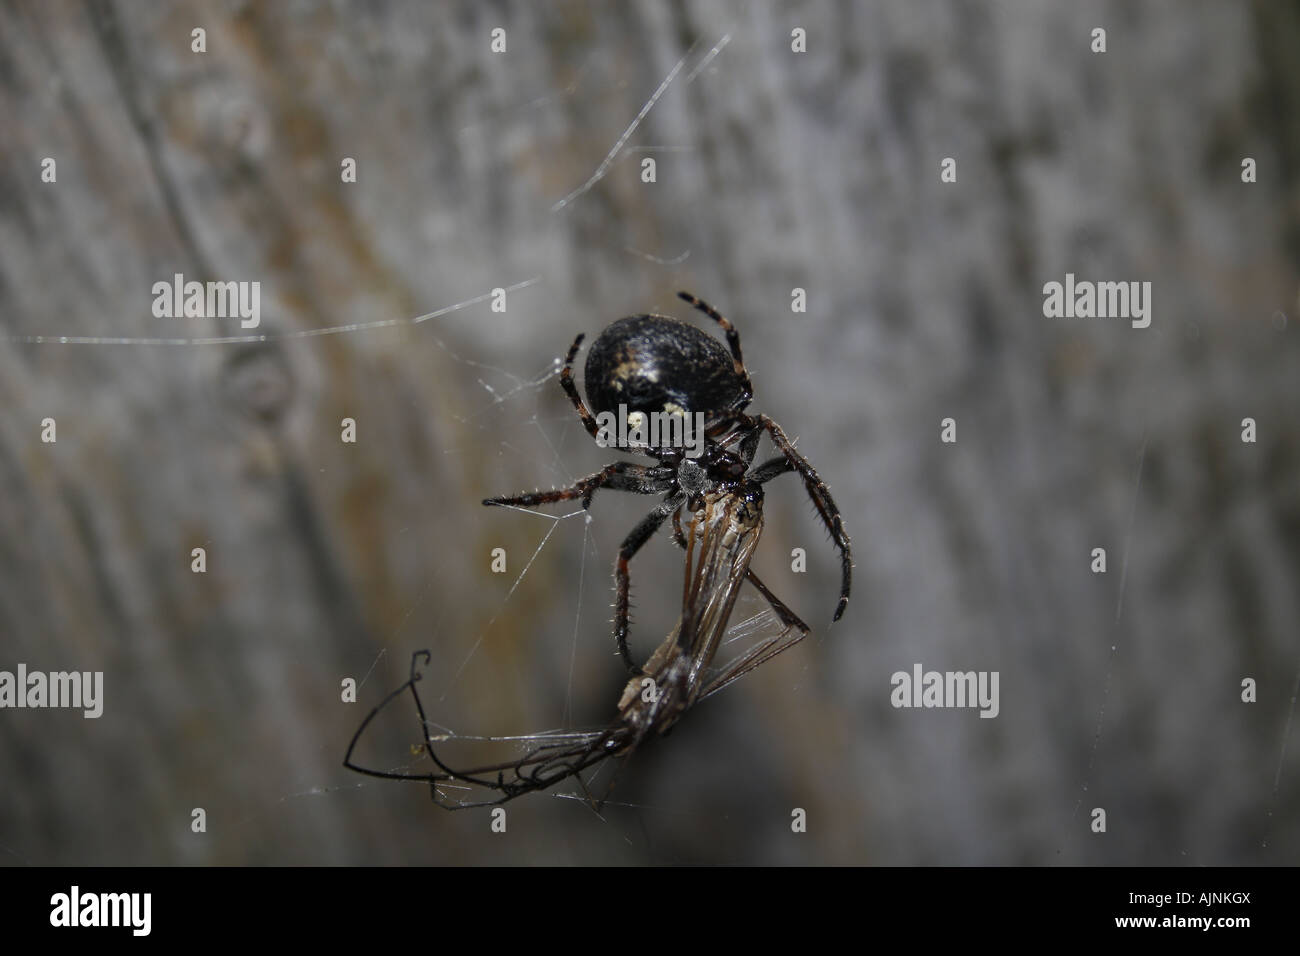 spider eating crane fly - Stock Image